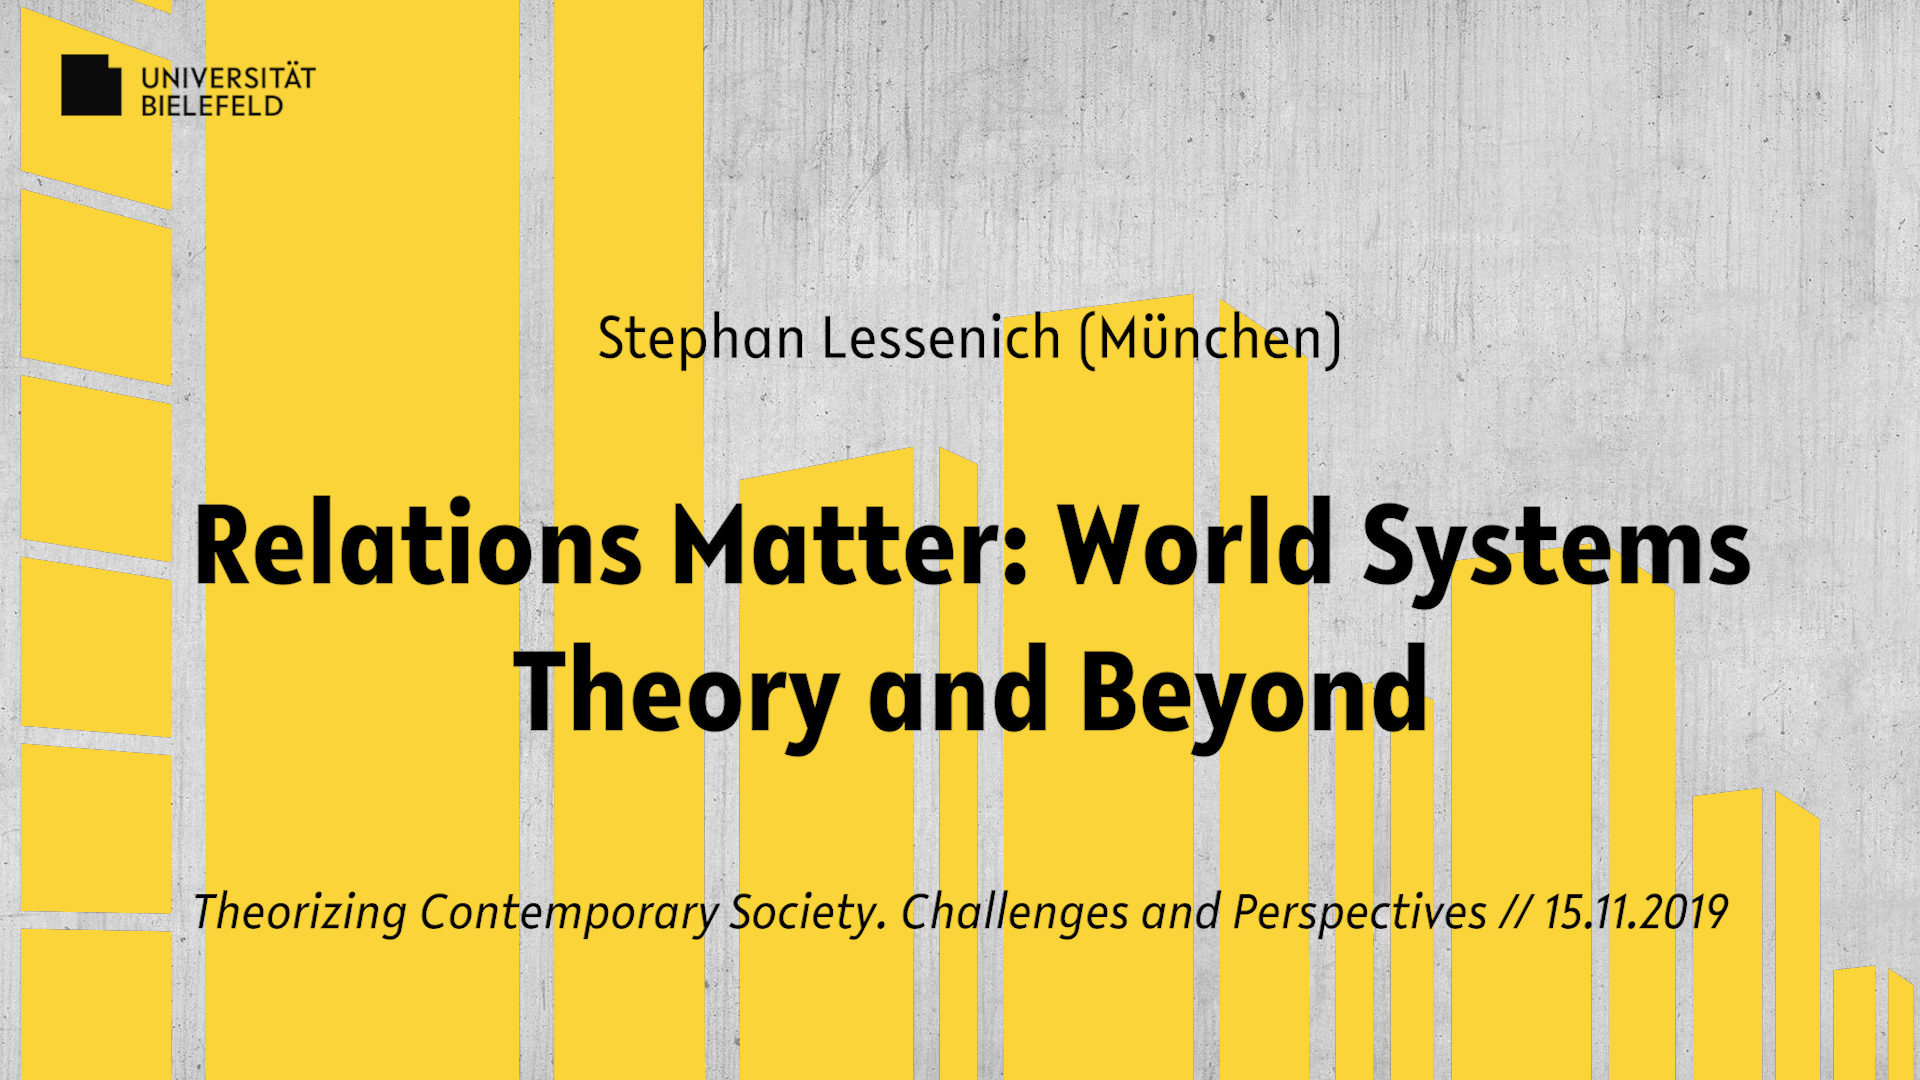 Relations Matter: World Systems Theory and Beyond